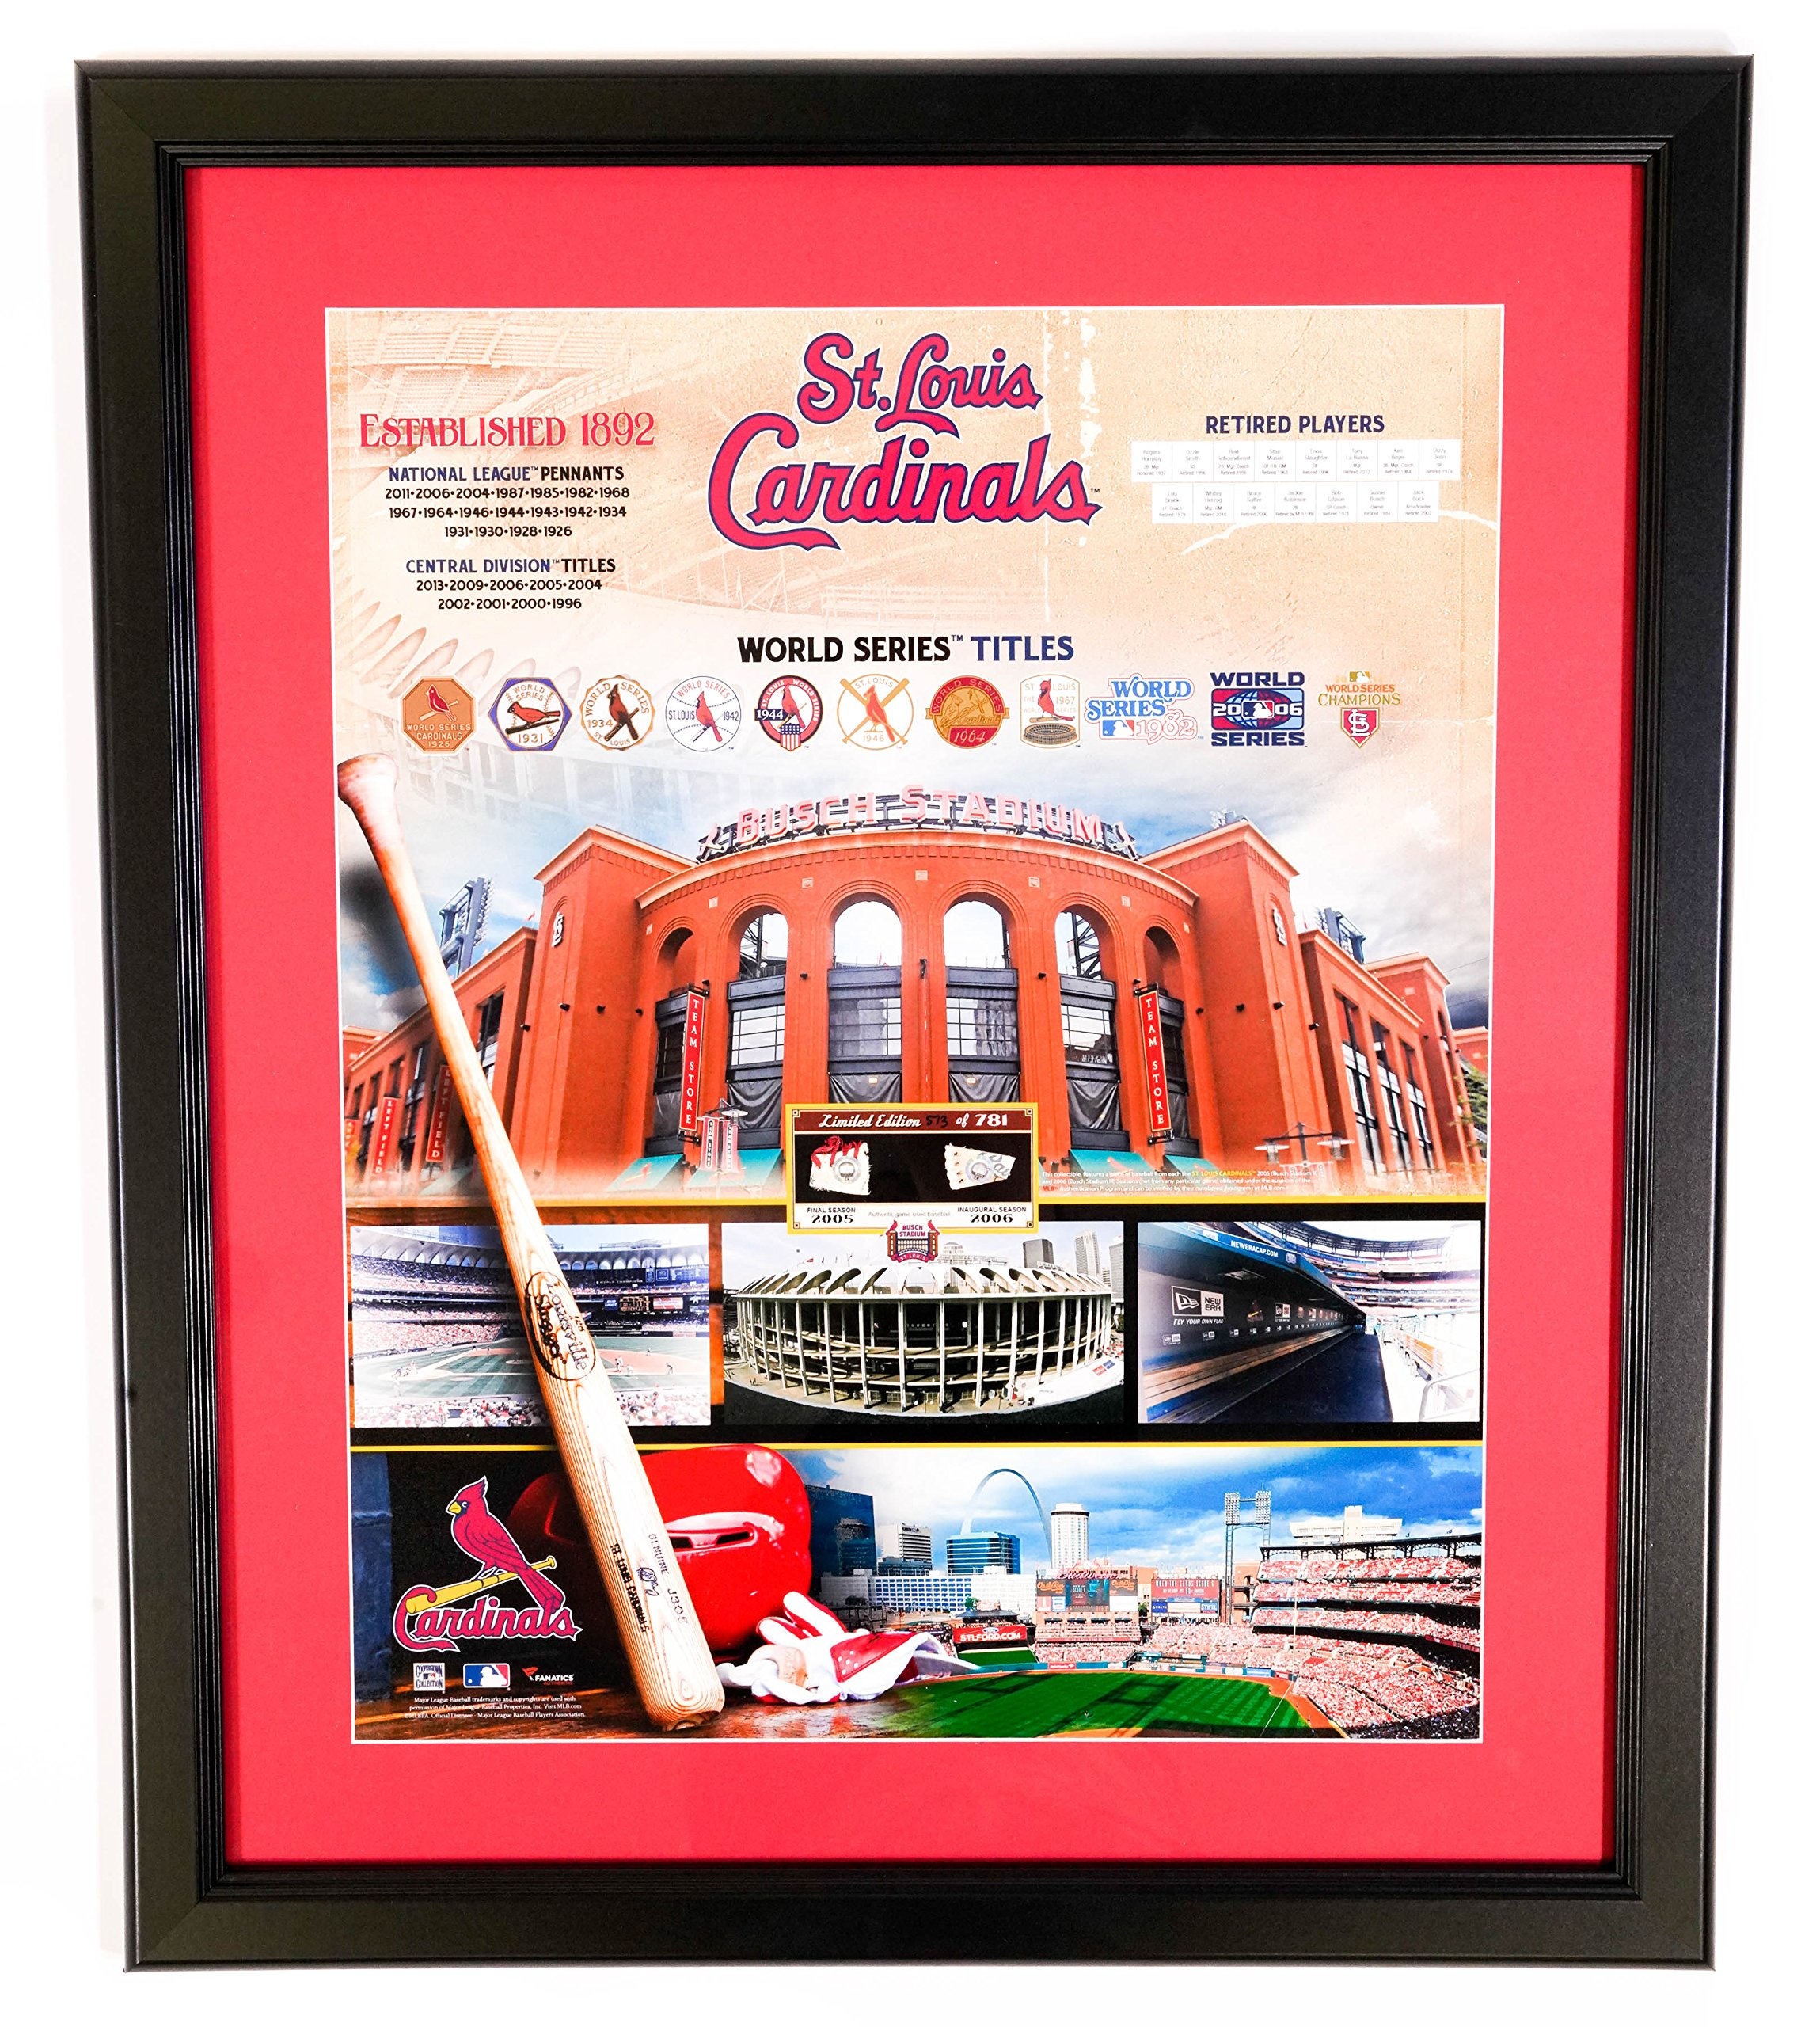 MLB St. Louis Cardinals Limited Edition 2005-2006 World Series Champions - 20x24 Framed Game Used Baseball Memorabilia by AUTHENTIC APPAREL